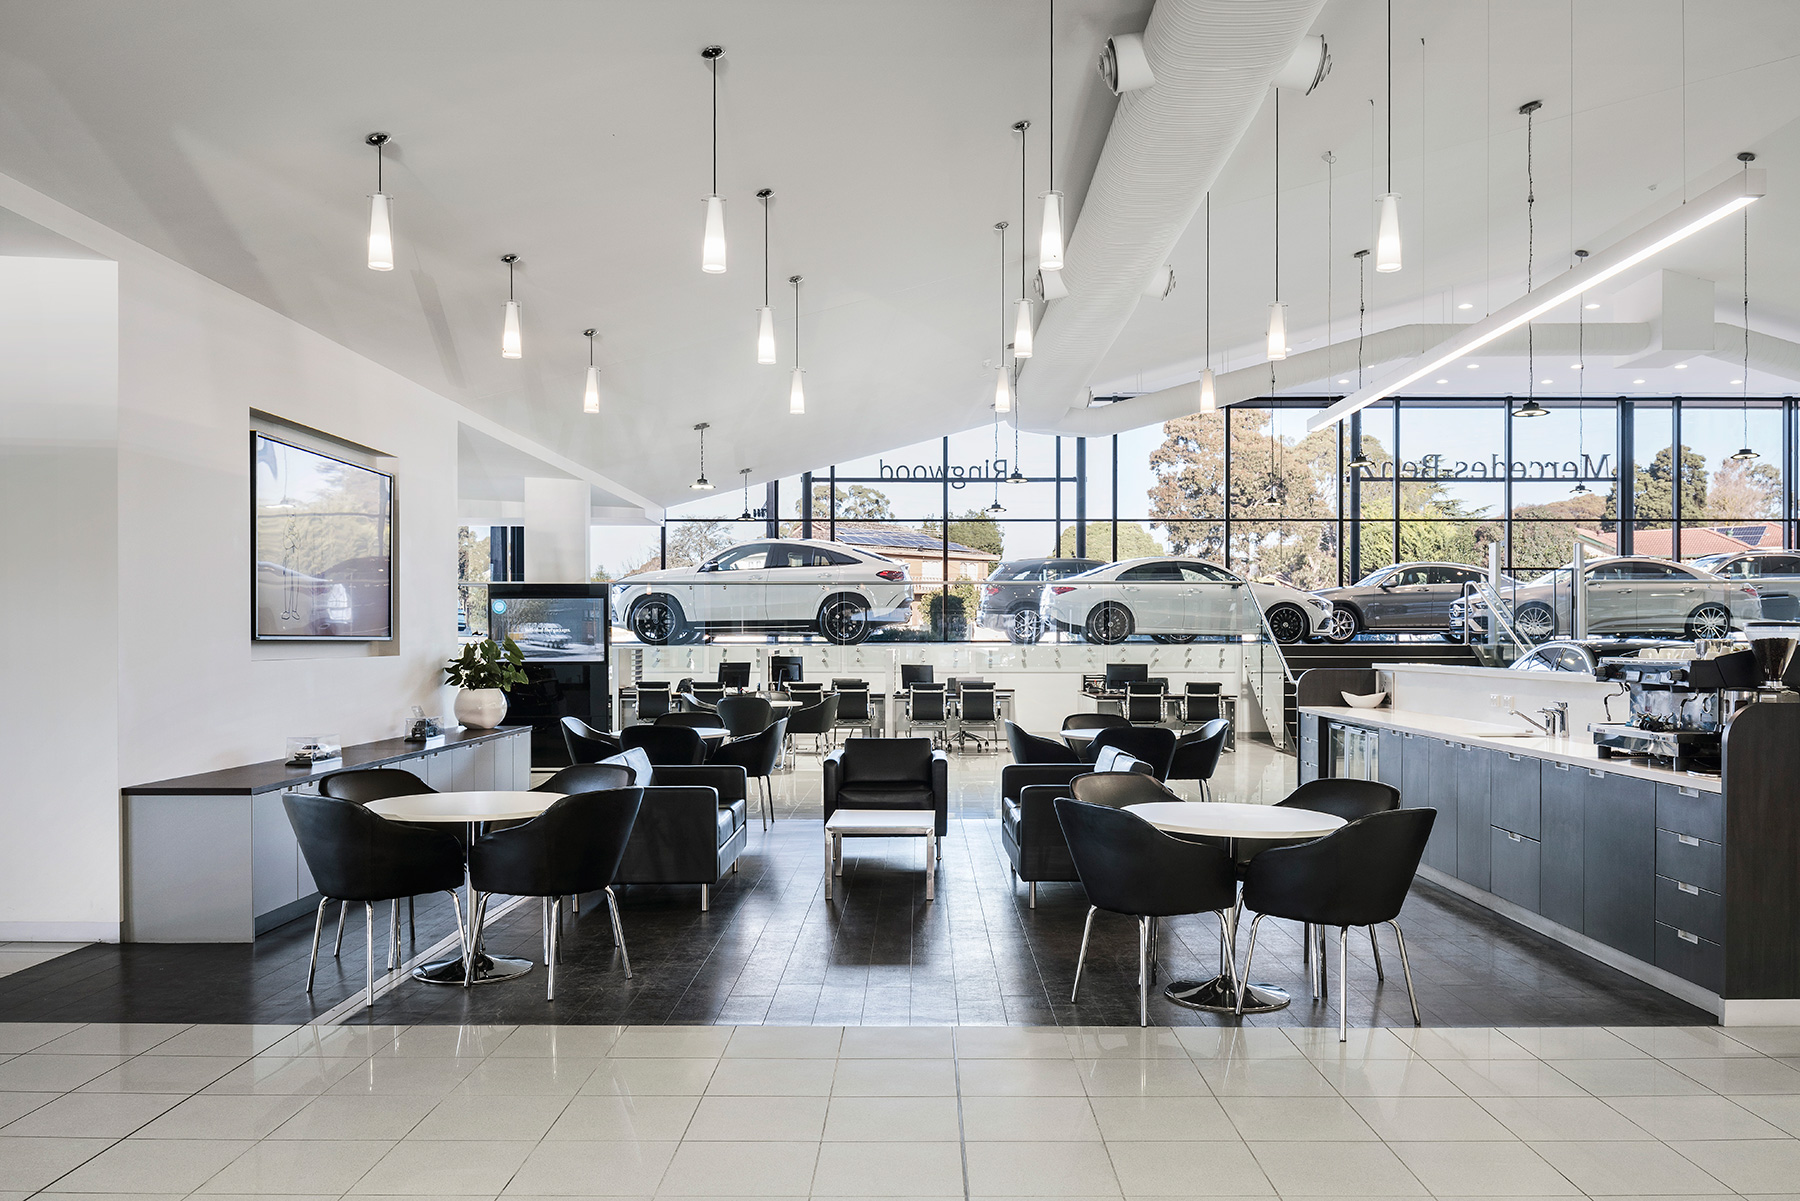 c. kairouz architects commercial interior design for car dealership showroom fitout kitchen image